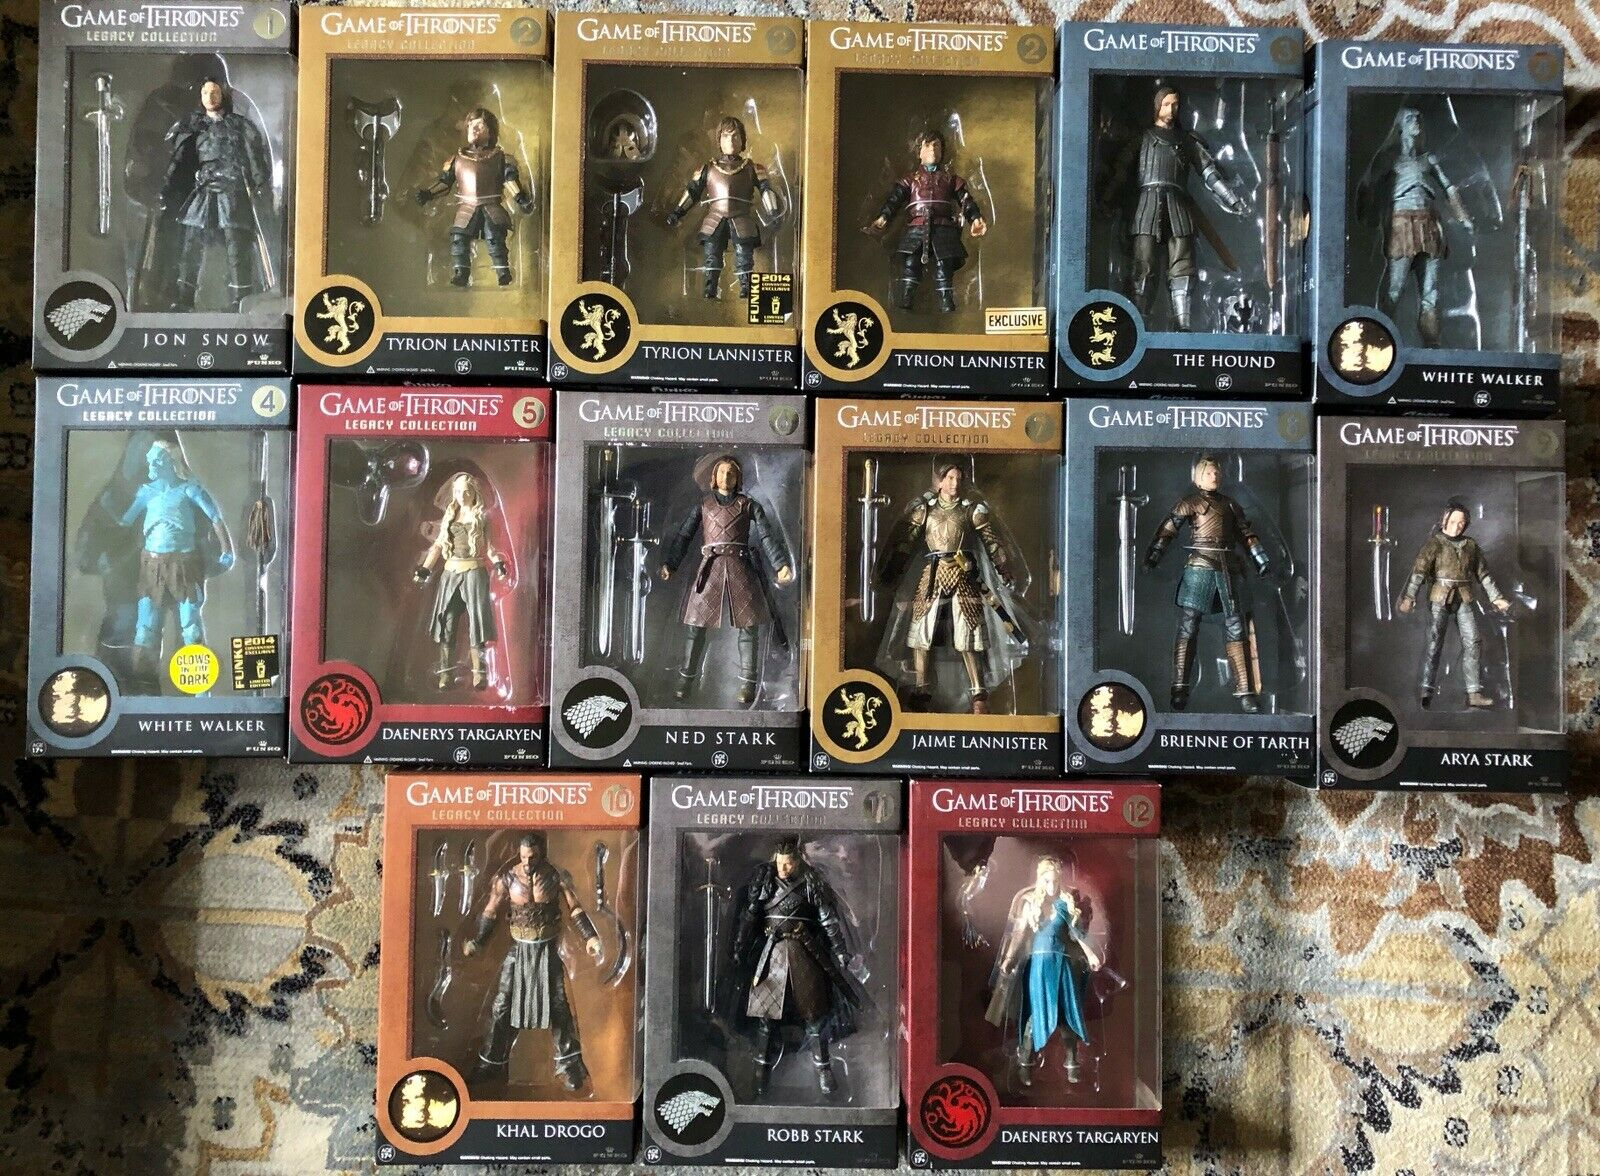 spel of Thrones Legacy samling Ifylls Set 6 65533;. Action Figures Series 1 & 2